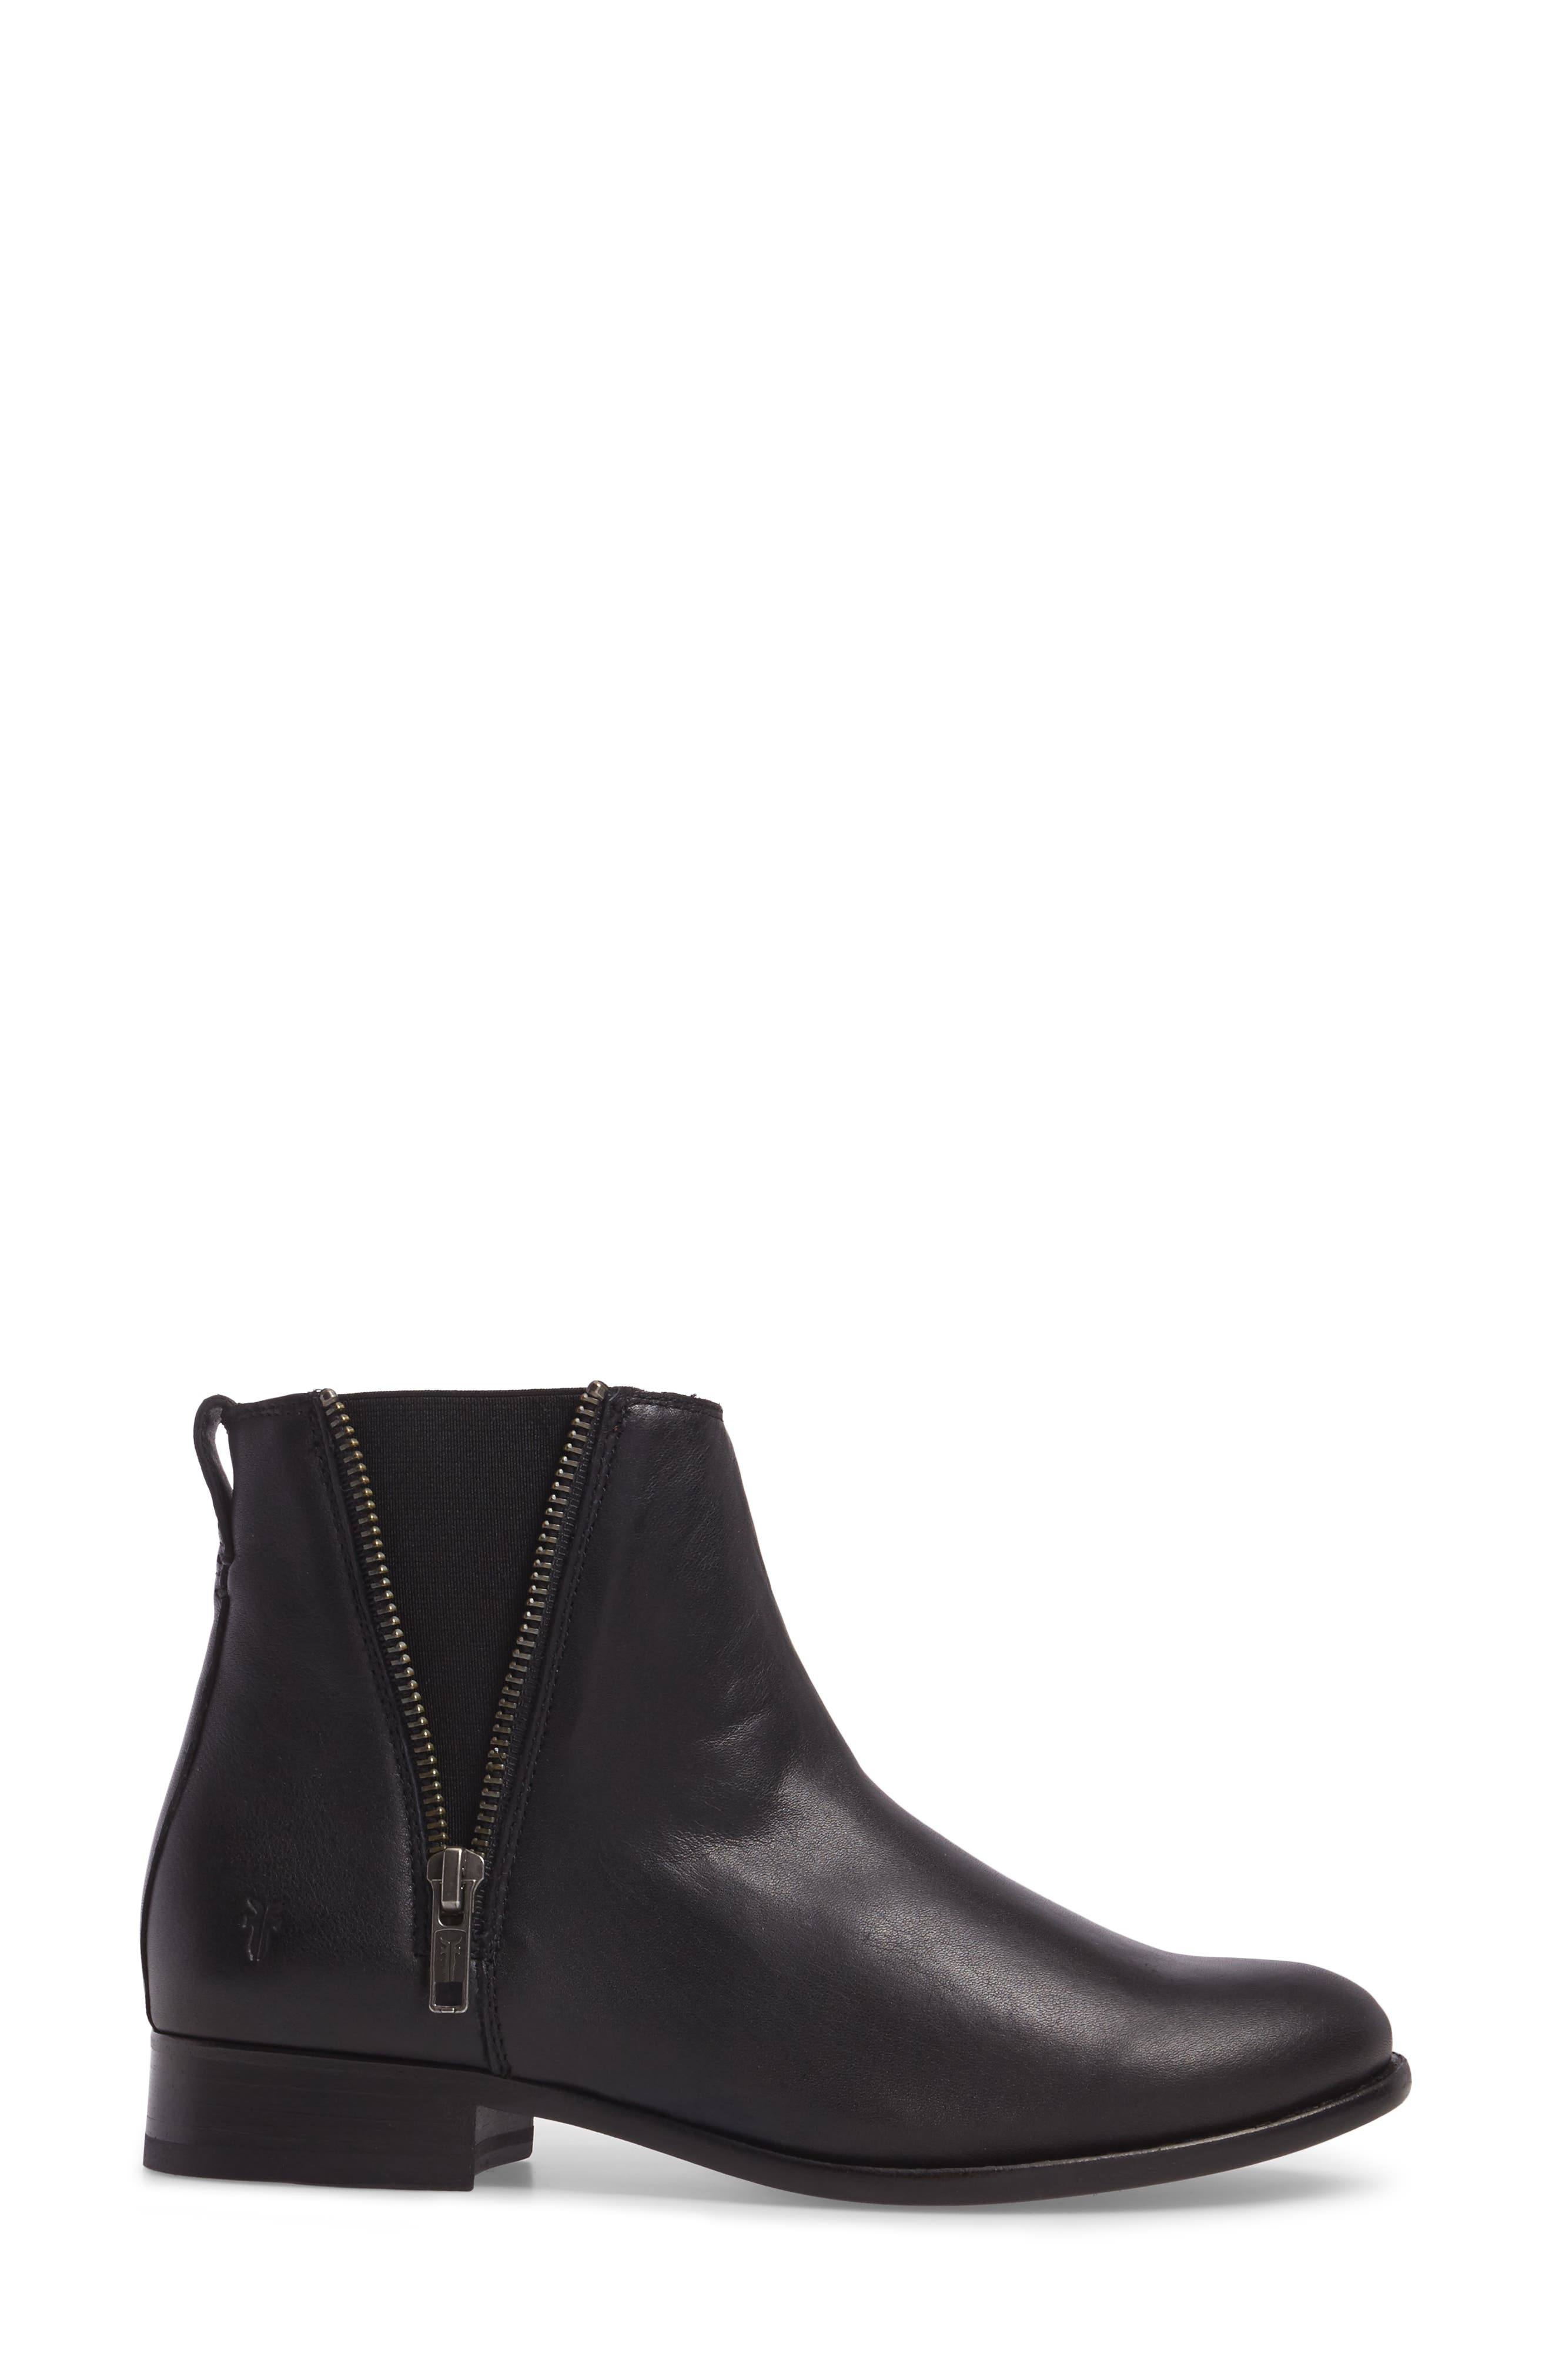 Carly Chelsea Boot,                             Alternate thumbnail 3, color,                             BLACK LEATHER